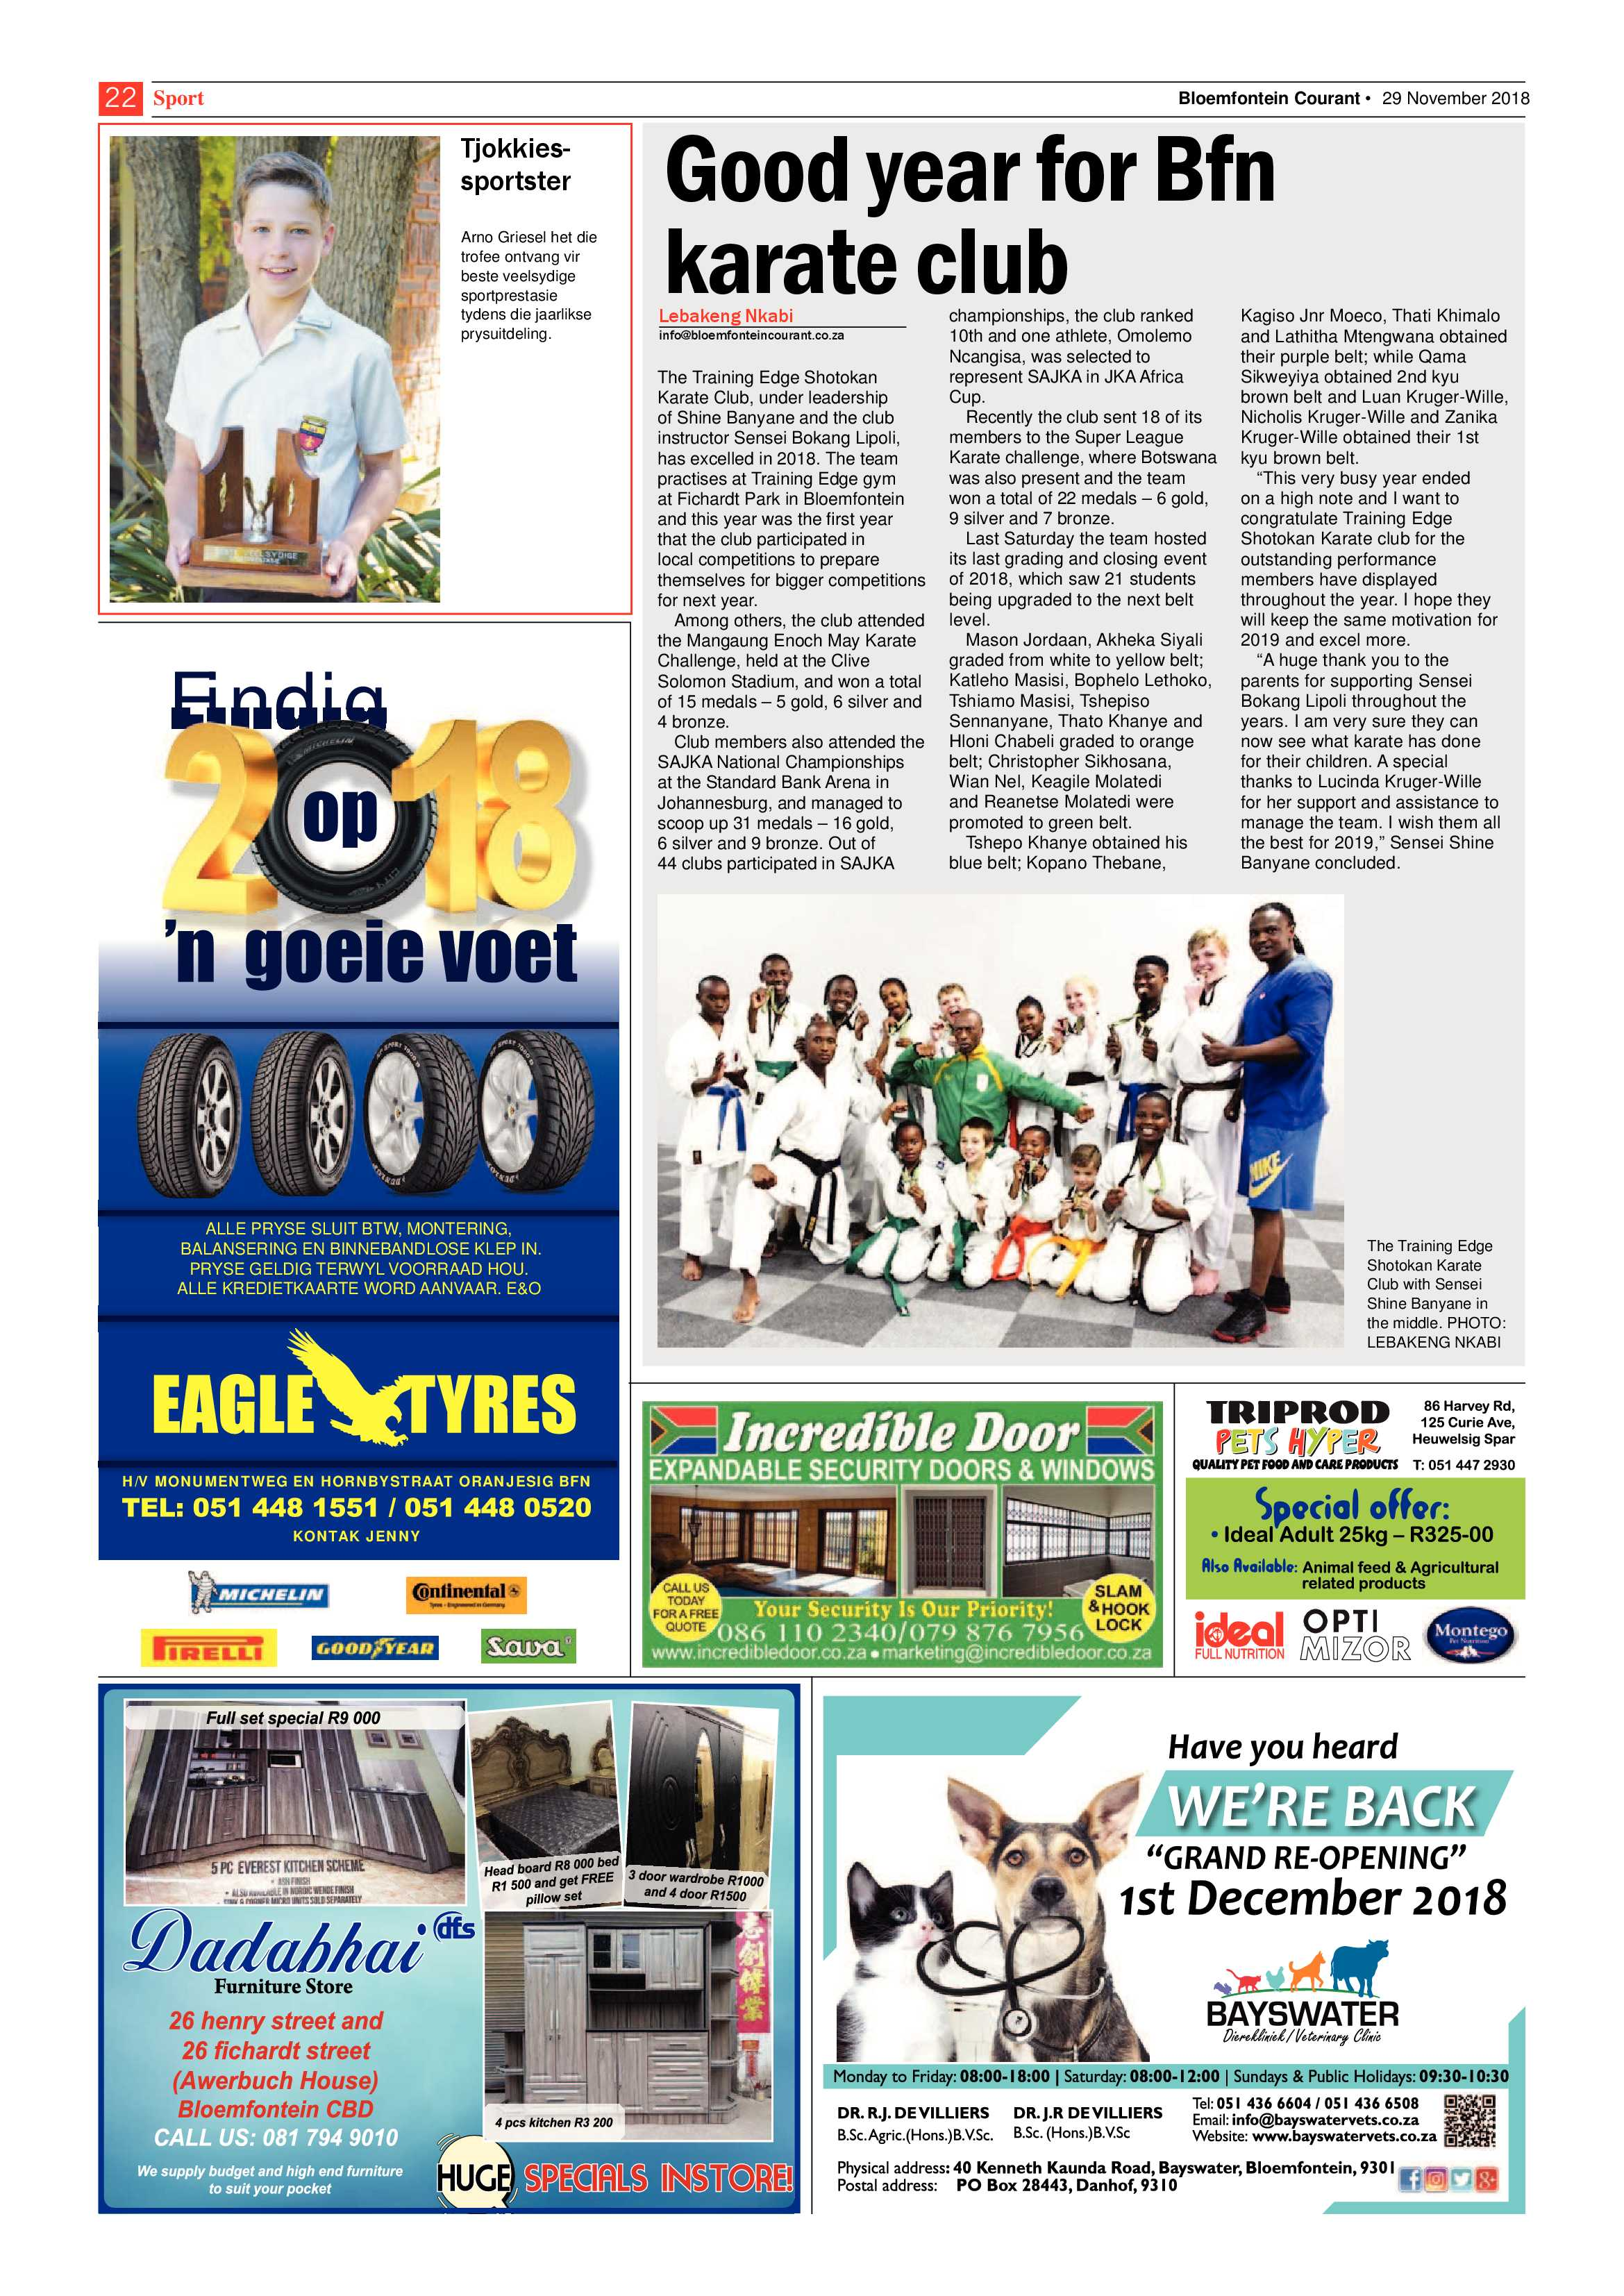 courant-29-november-2018-epapers-page-22